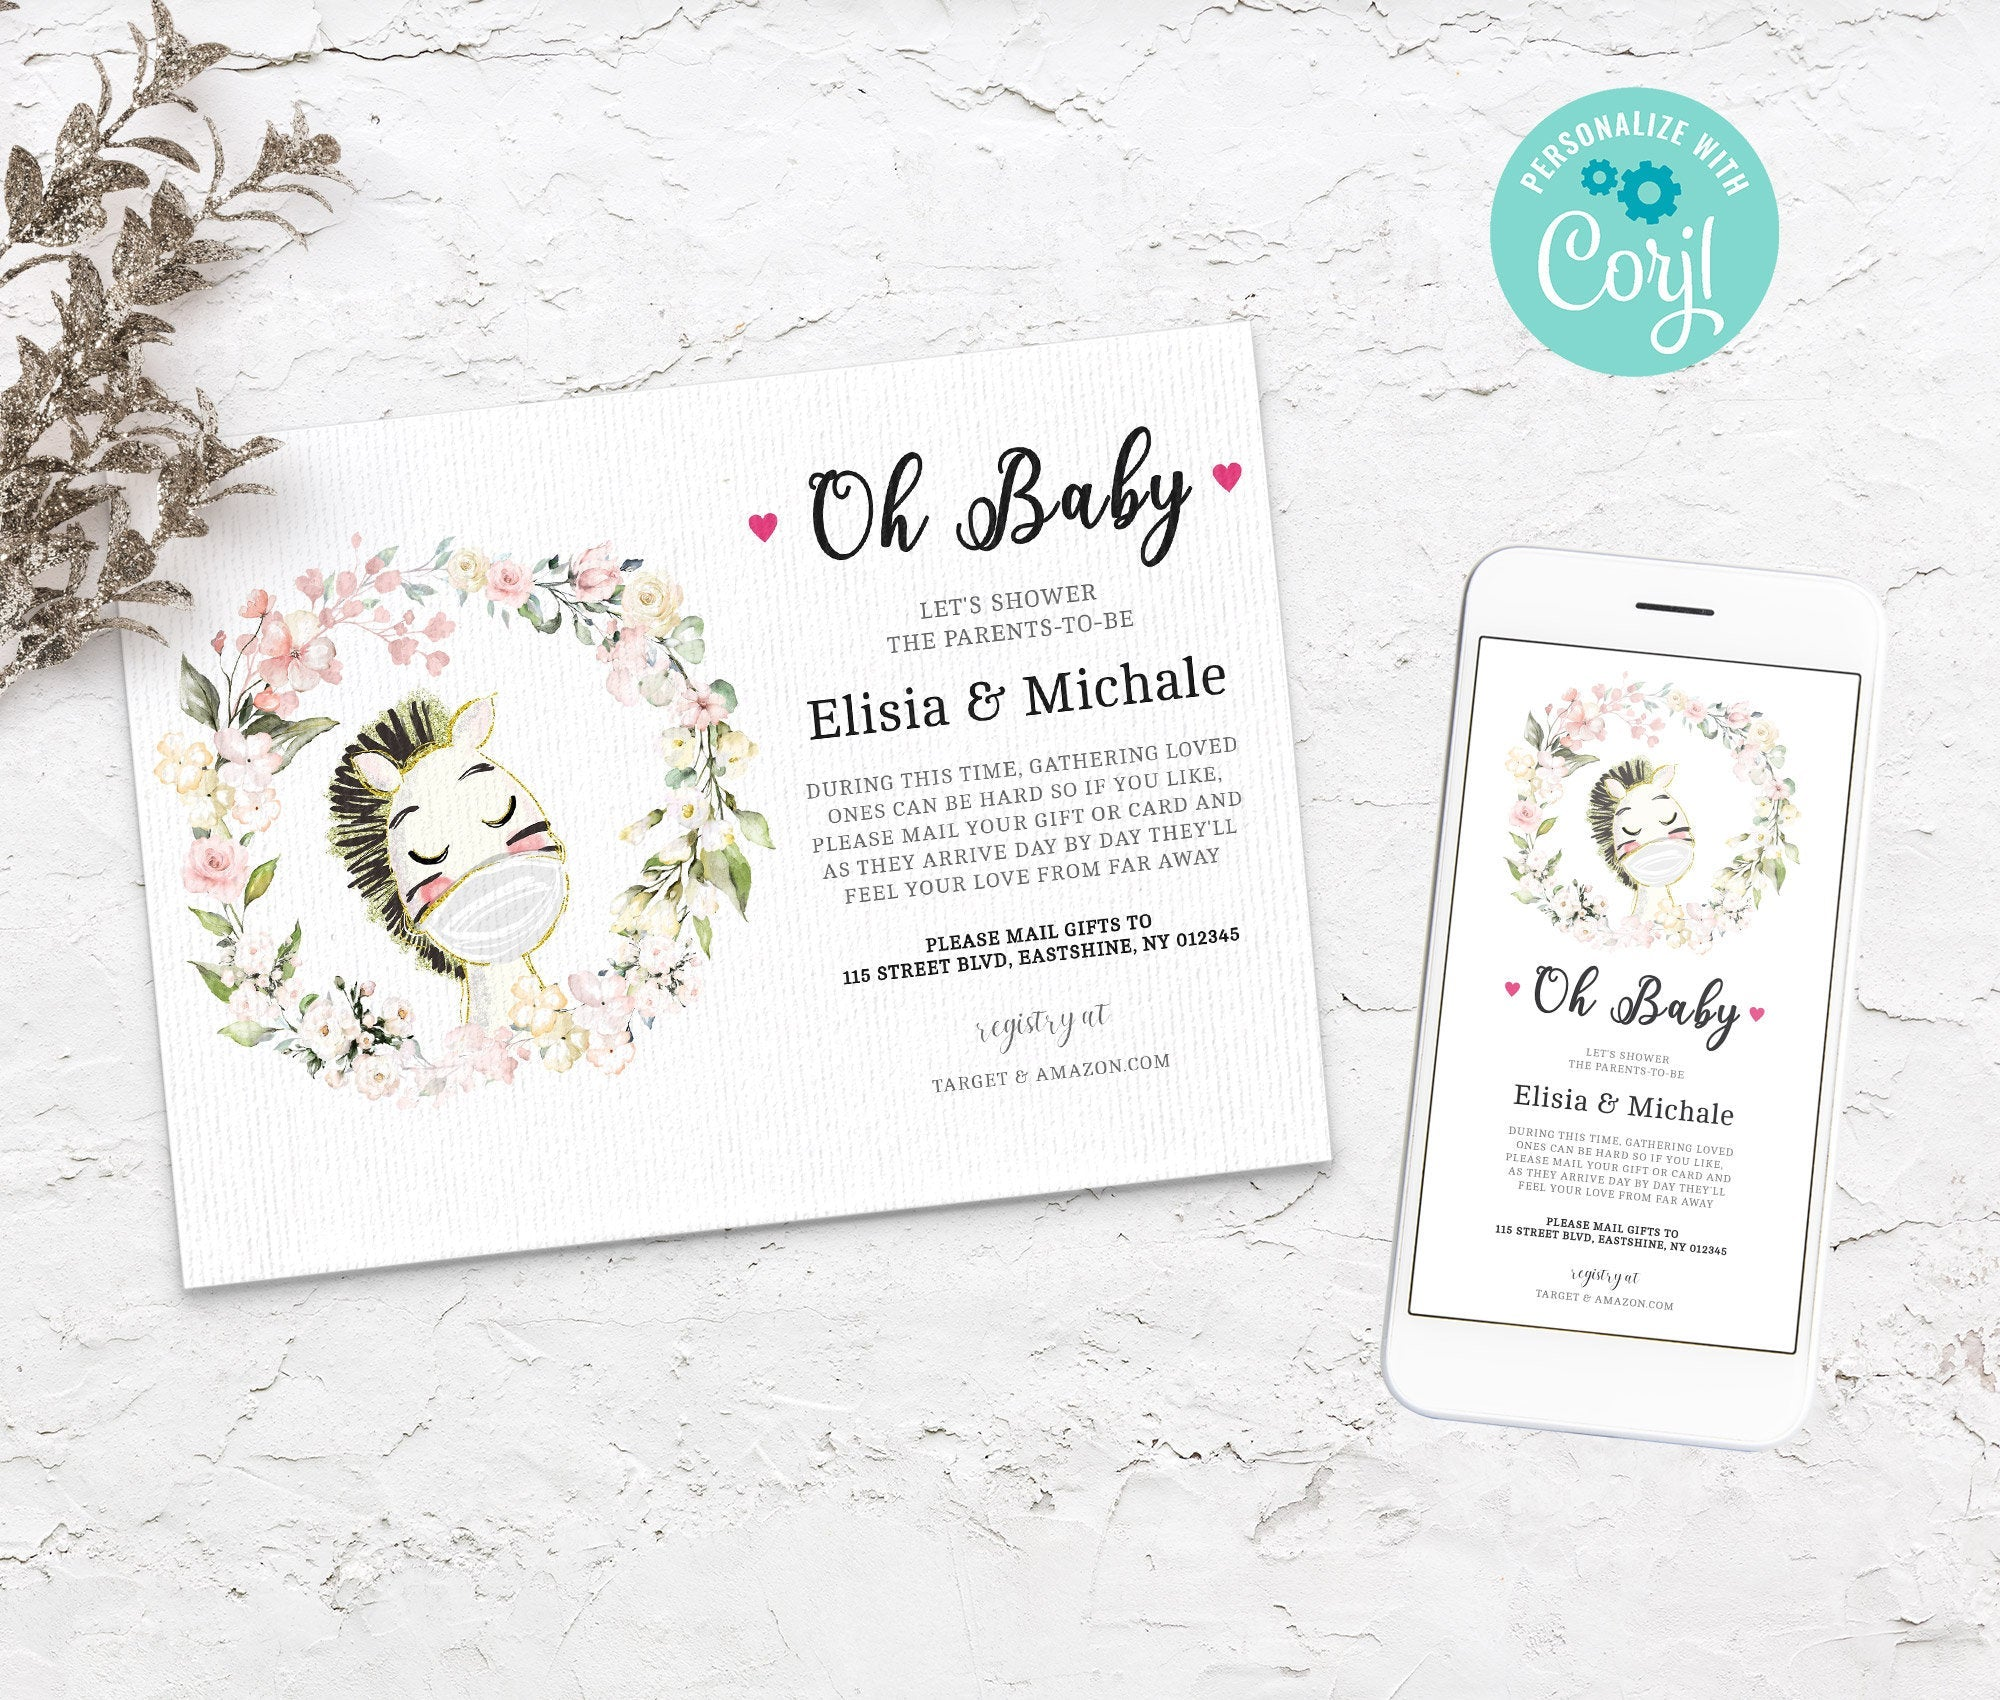 Baby Shower by Mail Template Horse - Animal Baby shower invitation, Shower by Mail, Shower Evite - Editable - Instant Download - 3613 BS3601